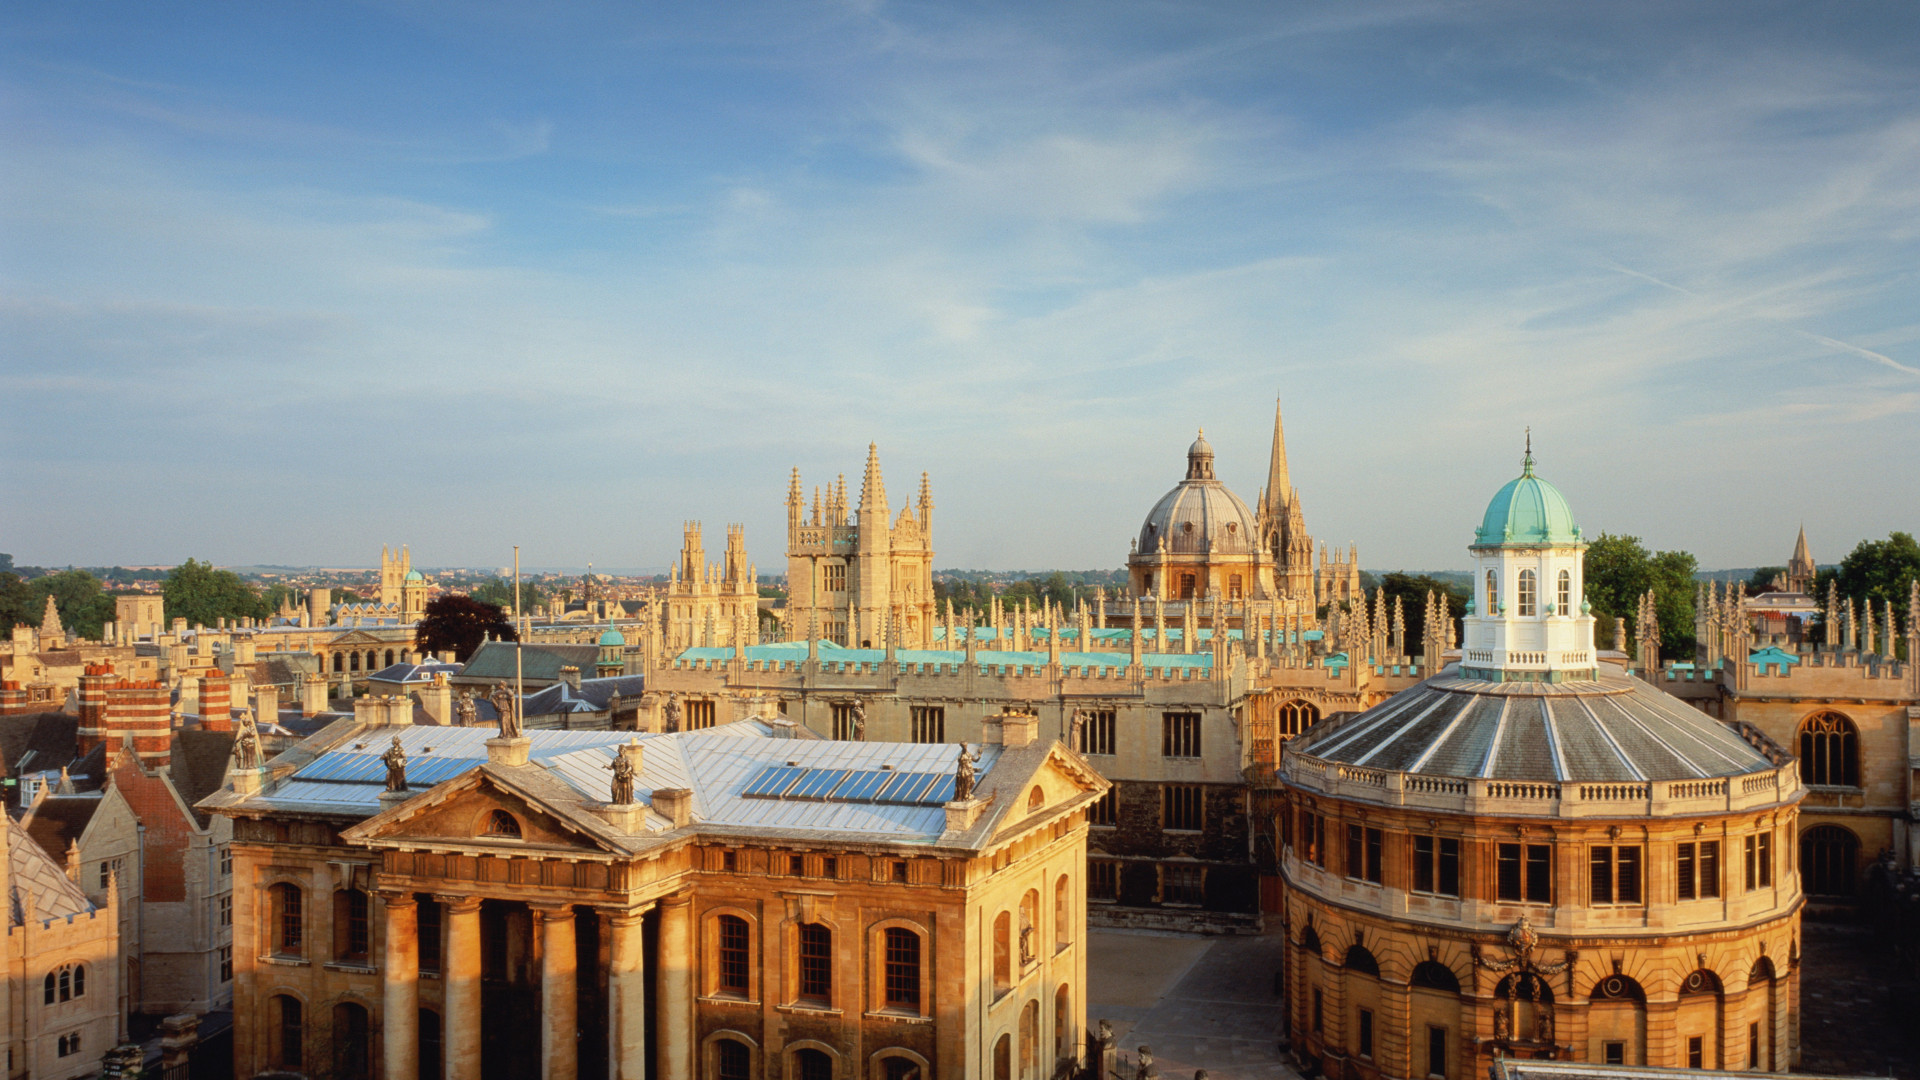 The rooftops of Oxford